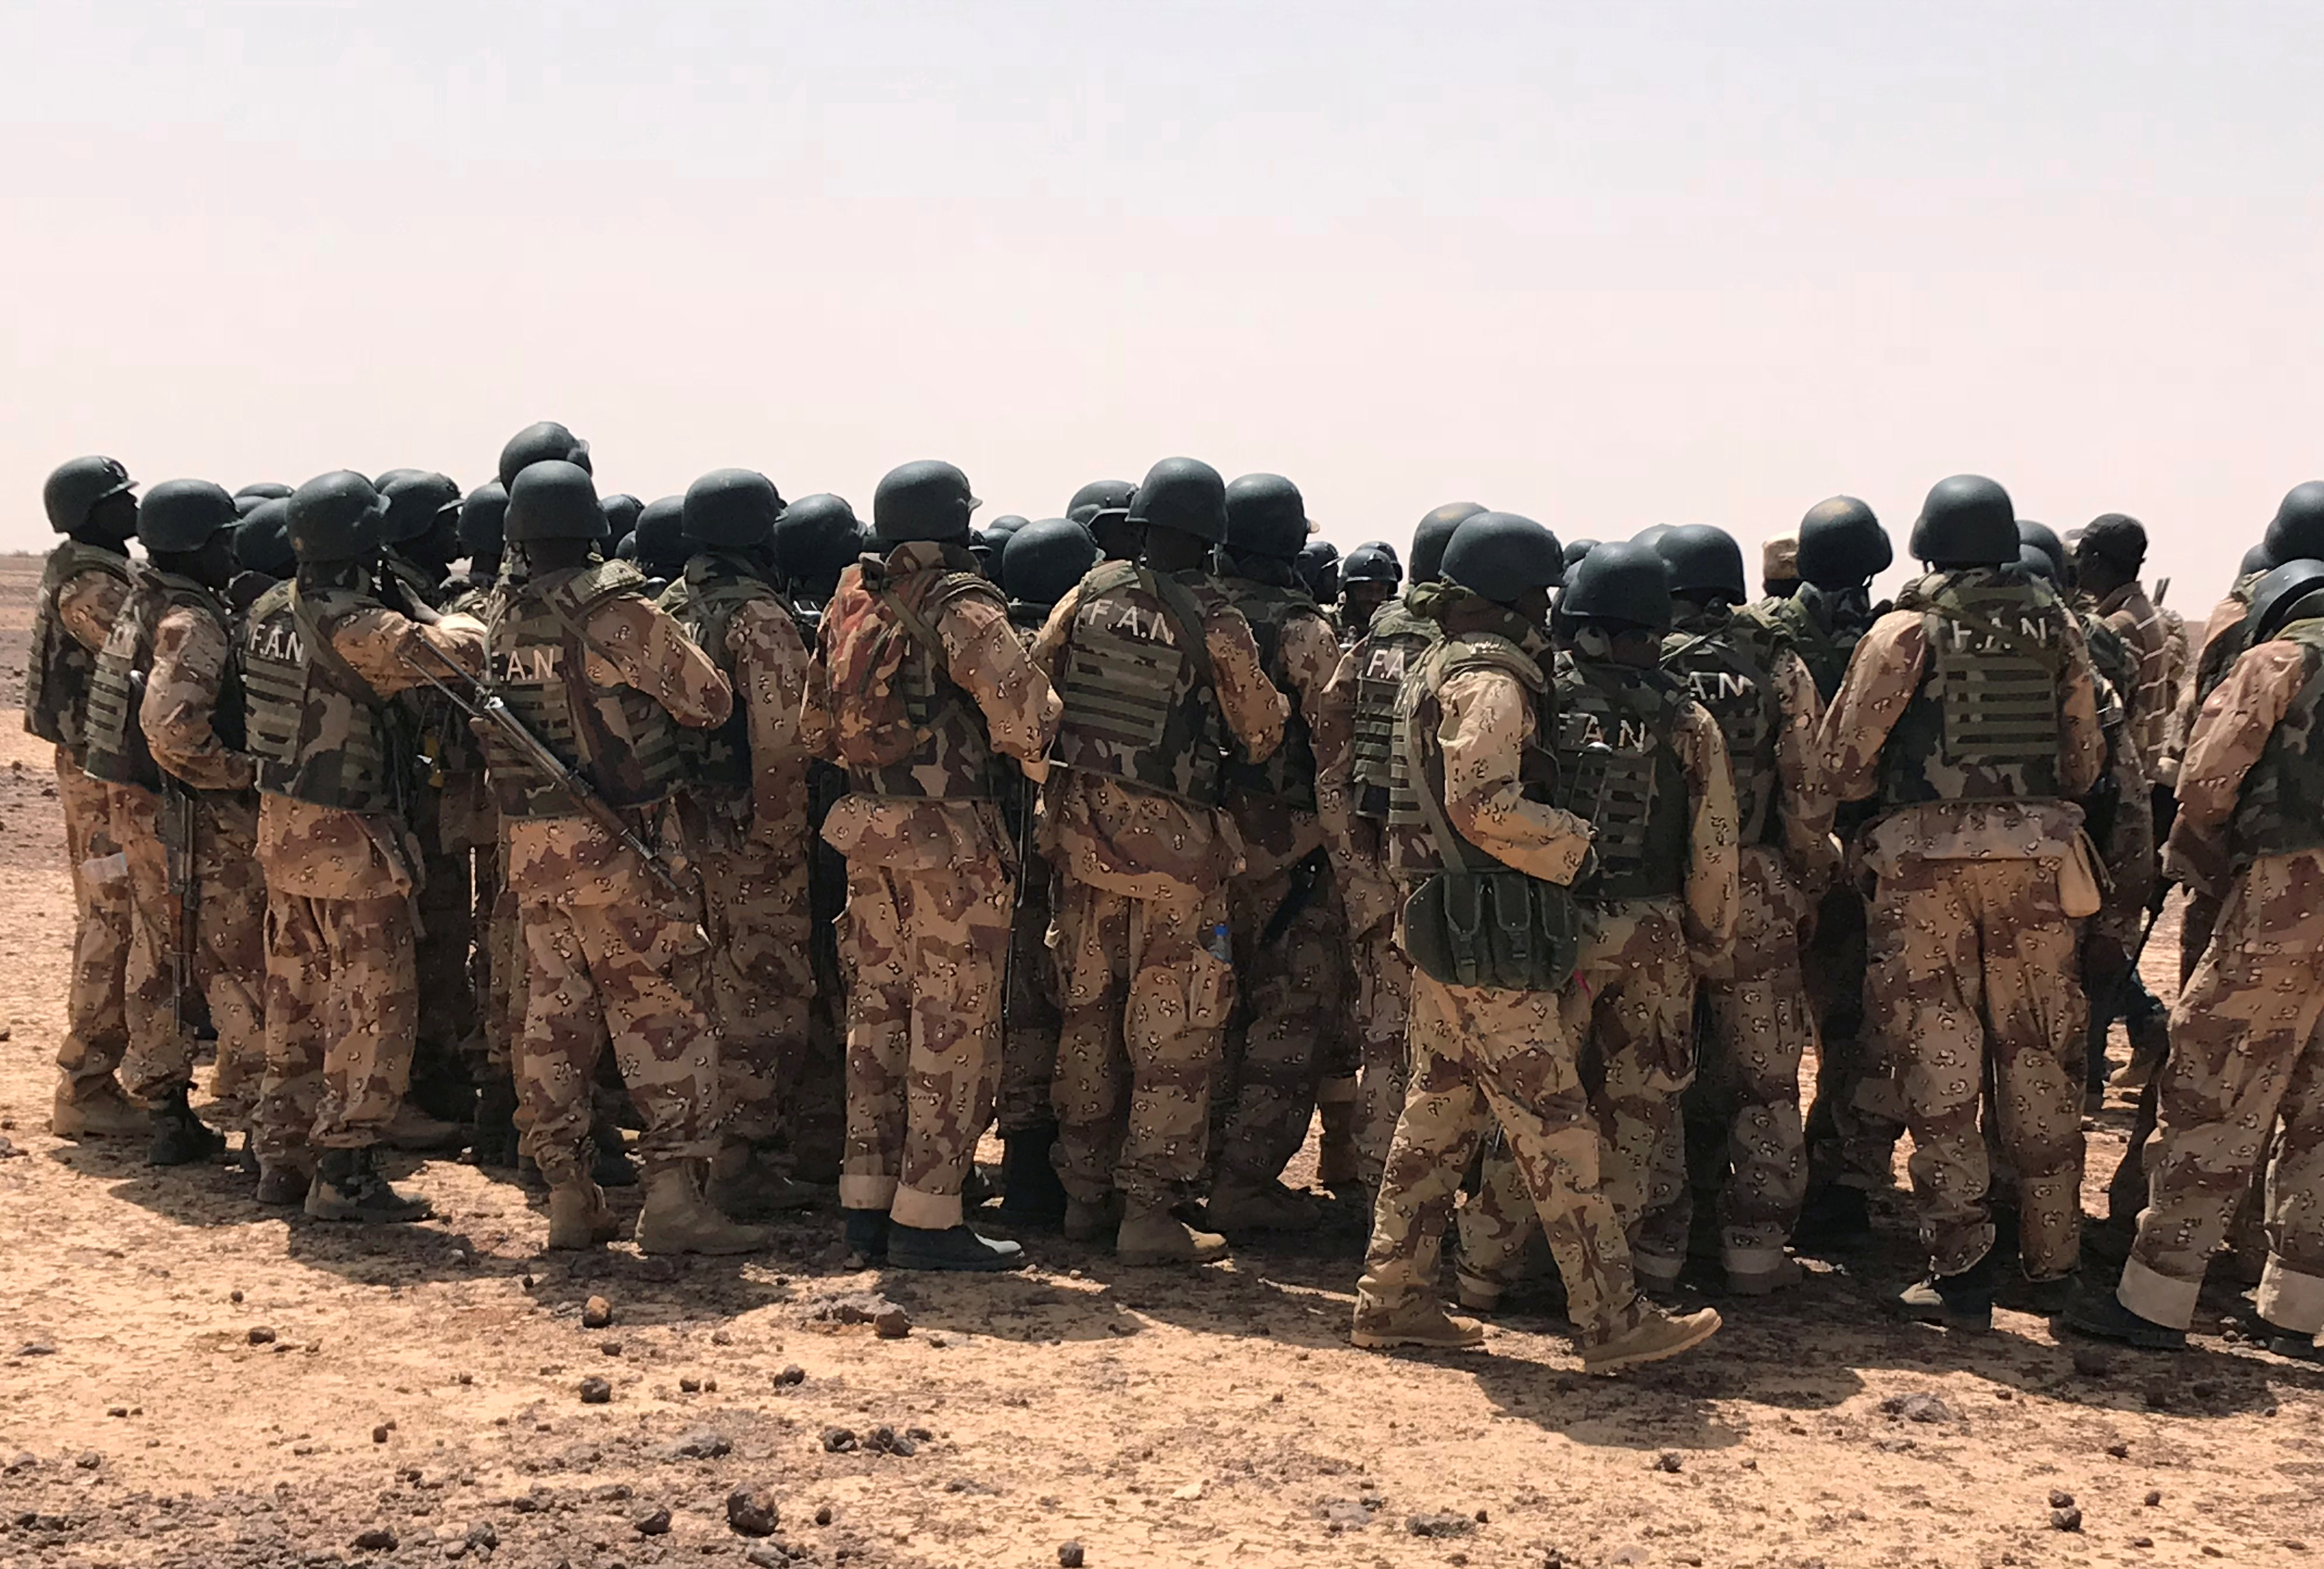 Nigerien special forces troops debrief with their Canadian trainers after drills at the Flintlock exercises in Ouallam, Niger April 18, 2018.